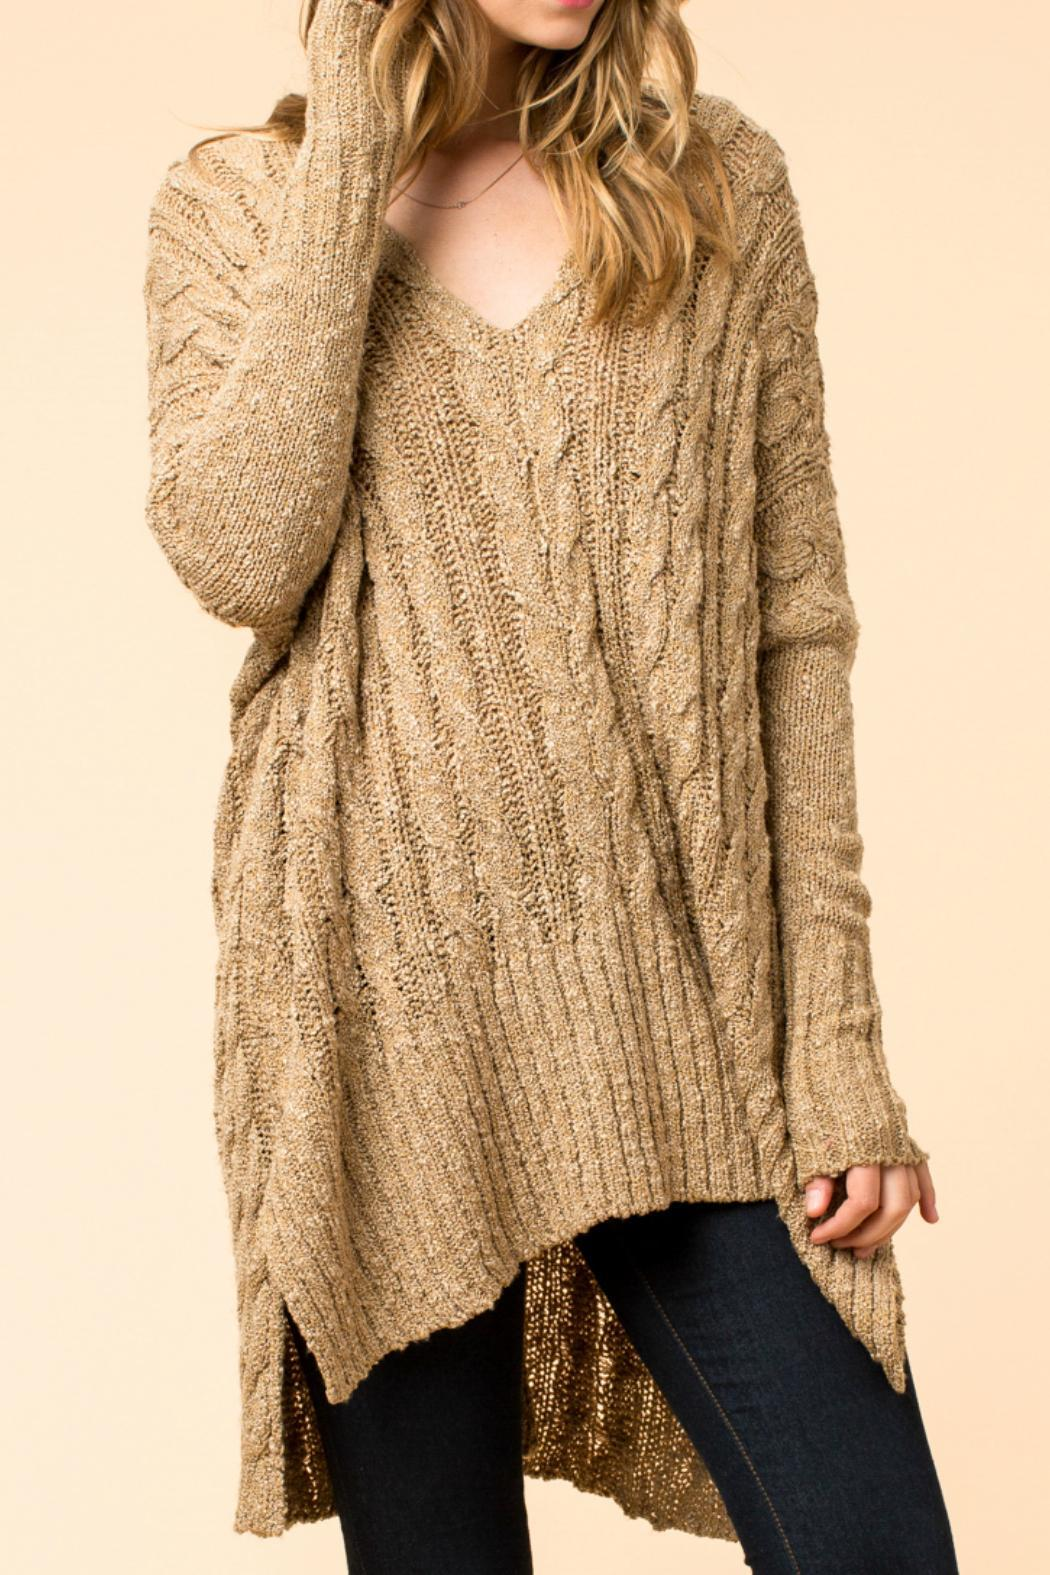 HYFVE Oversized Cable Knit Sweater from New York by Chandeliers ...